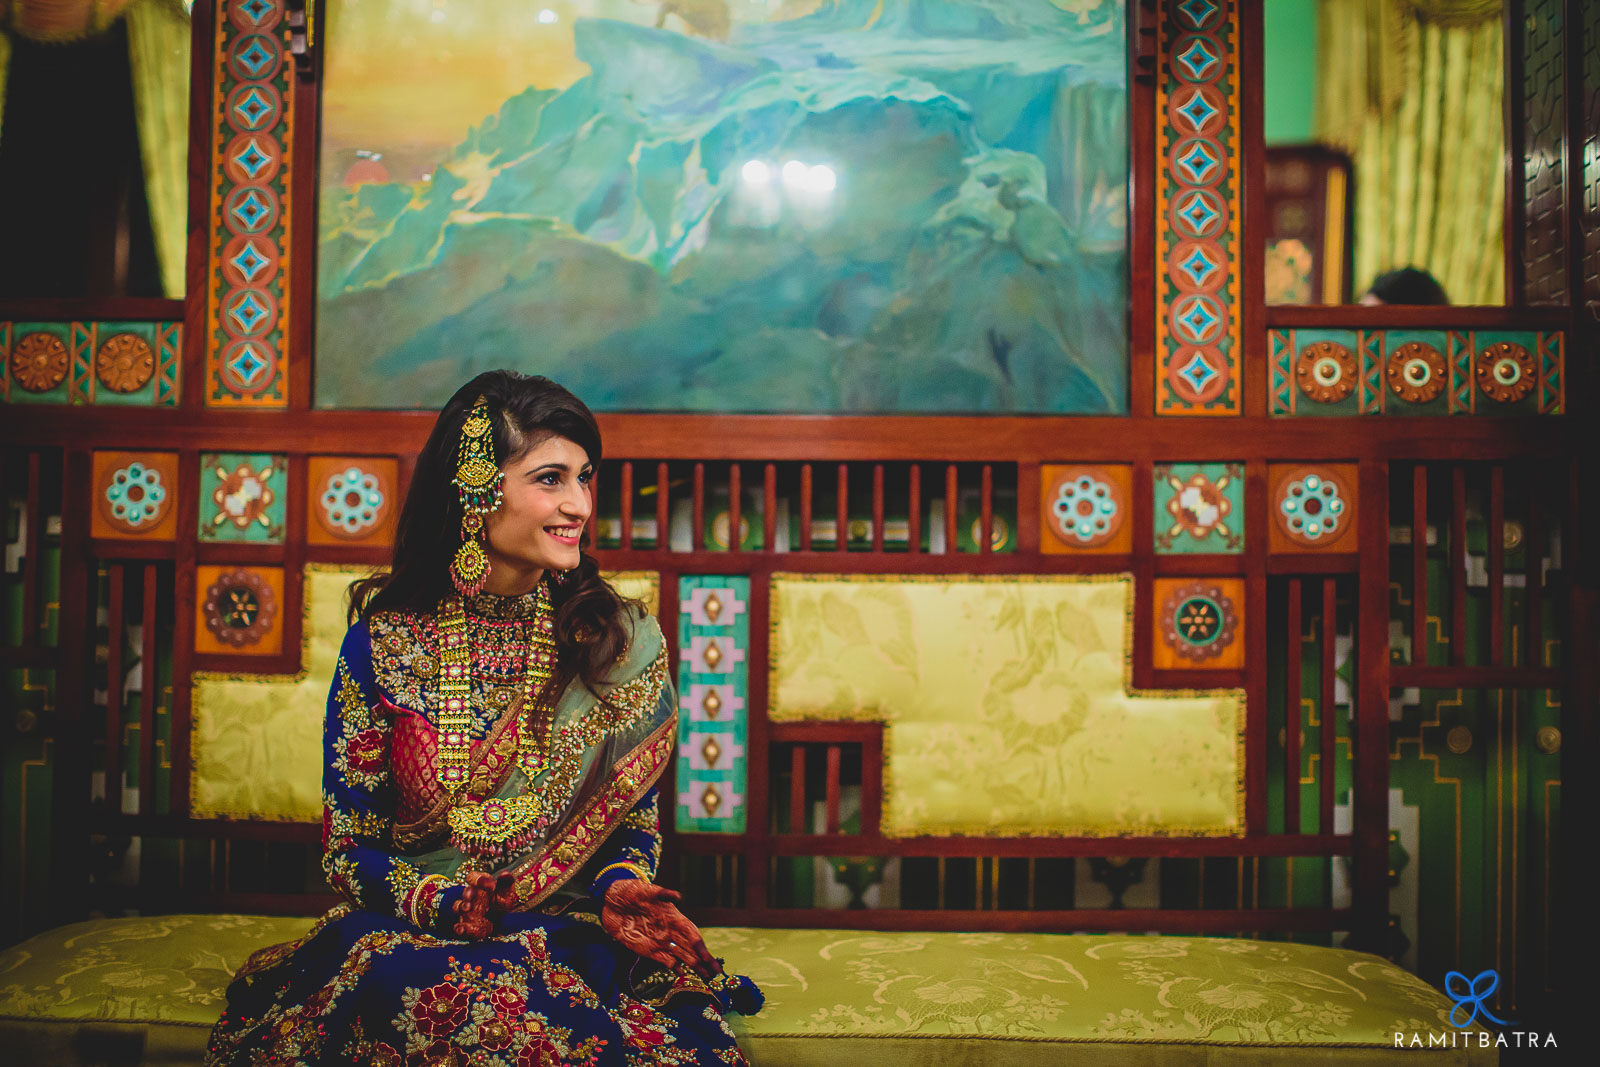 Wedding-Photographer-Hyderabad-India-RamitBatra_20